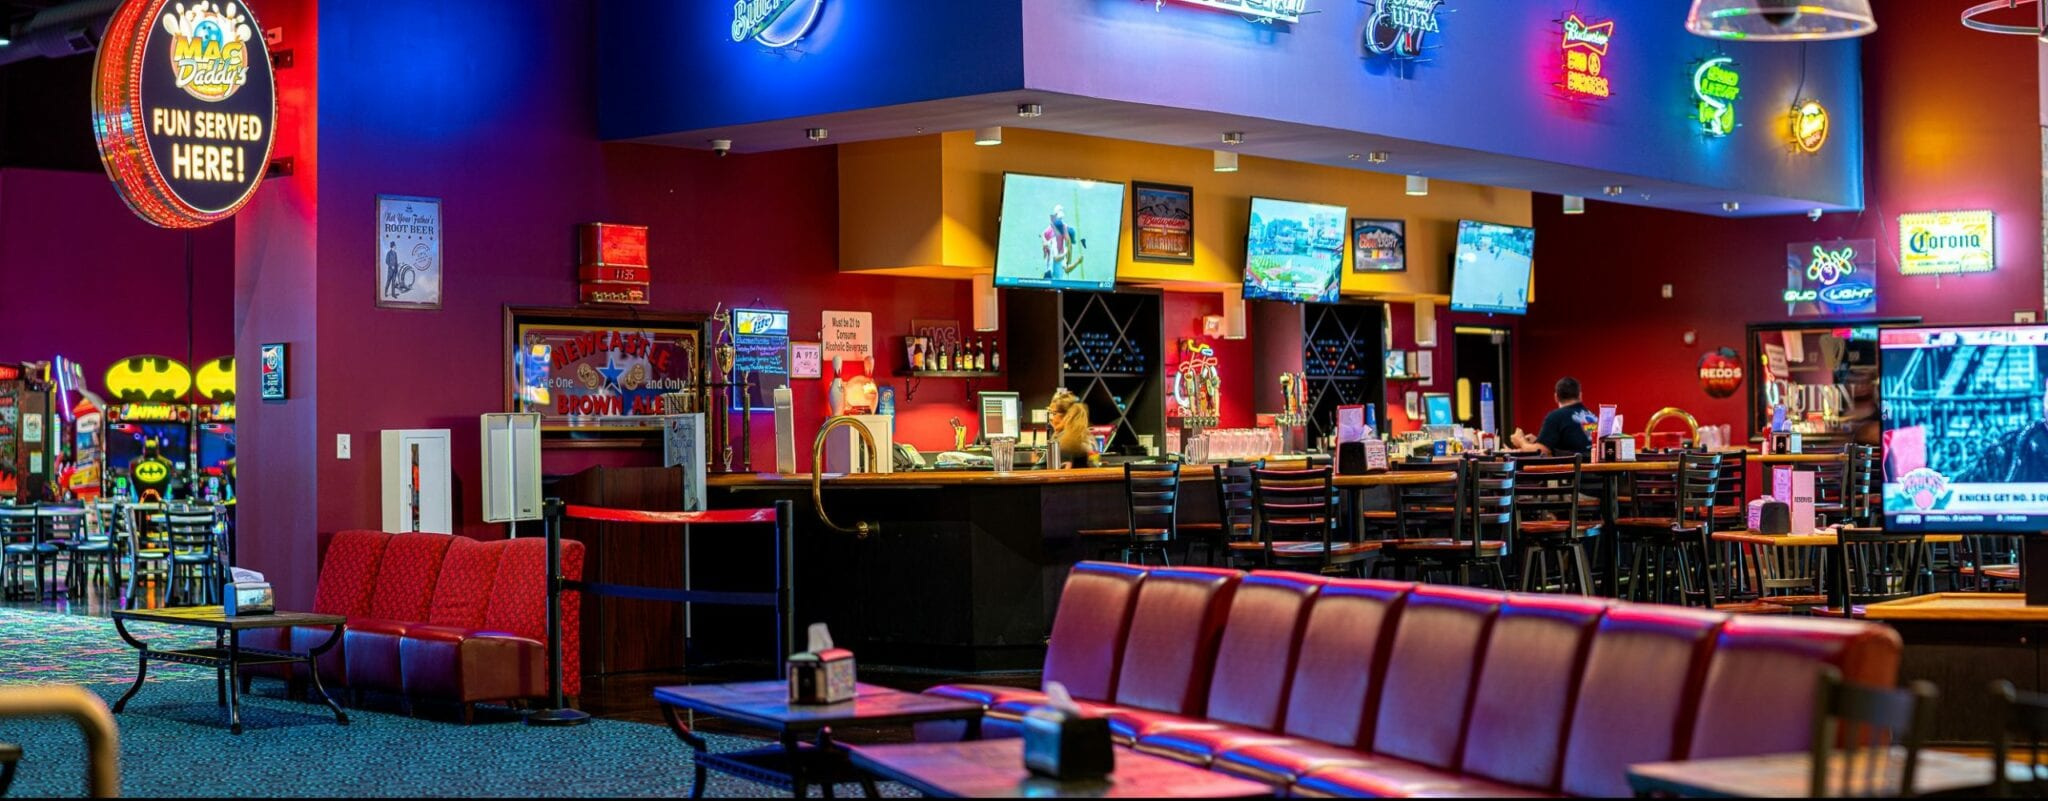 Crystal Coast Bar, Arcade and Bar